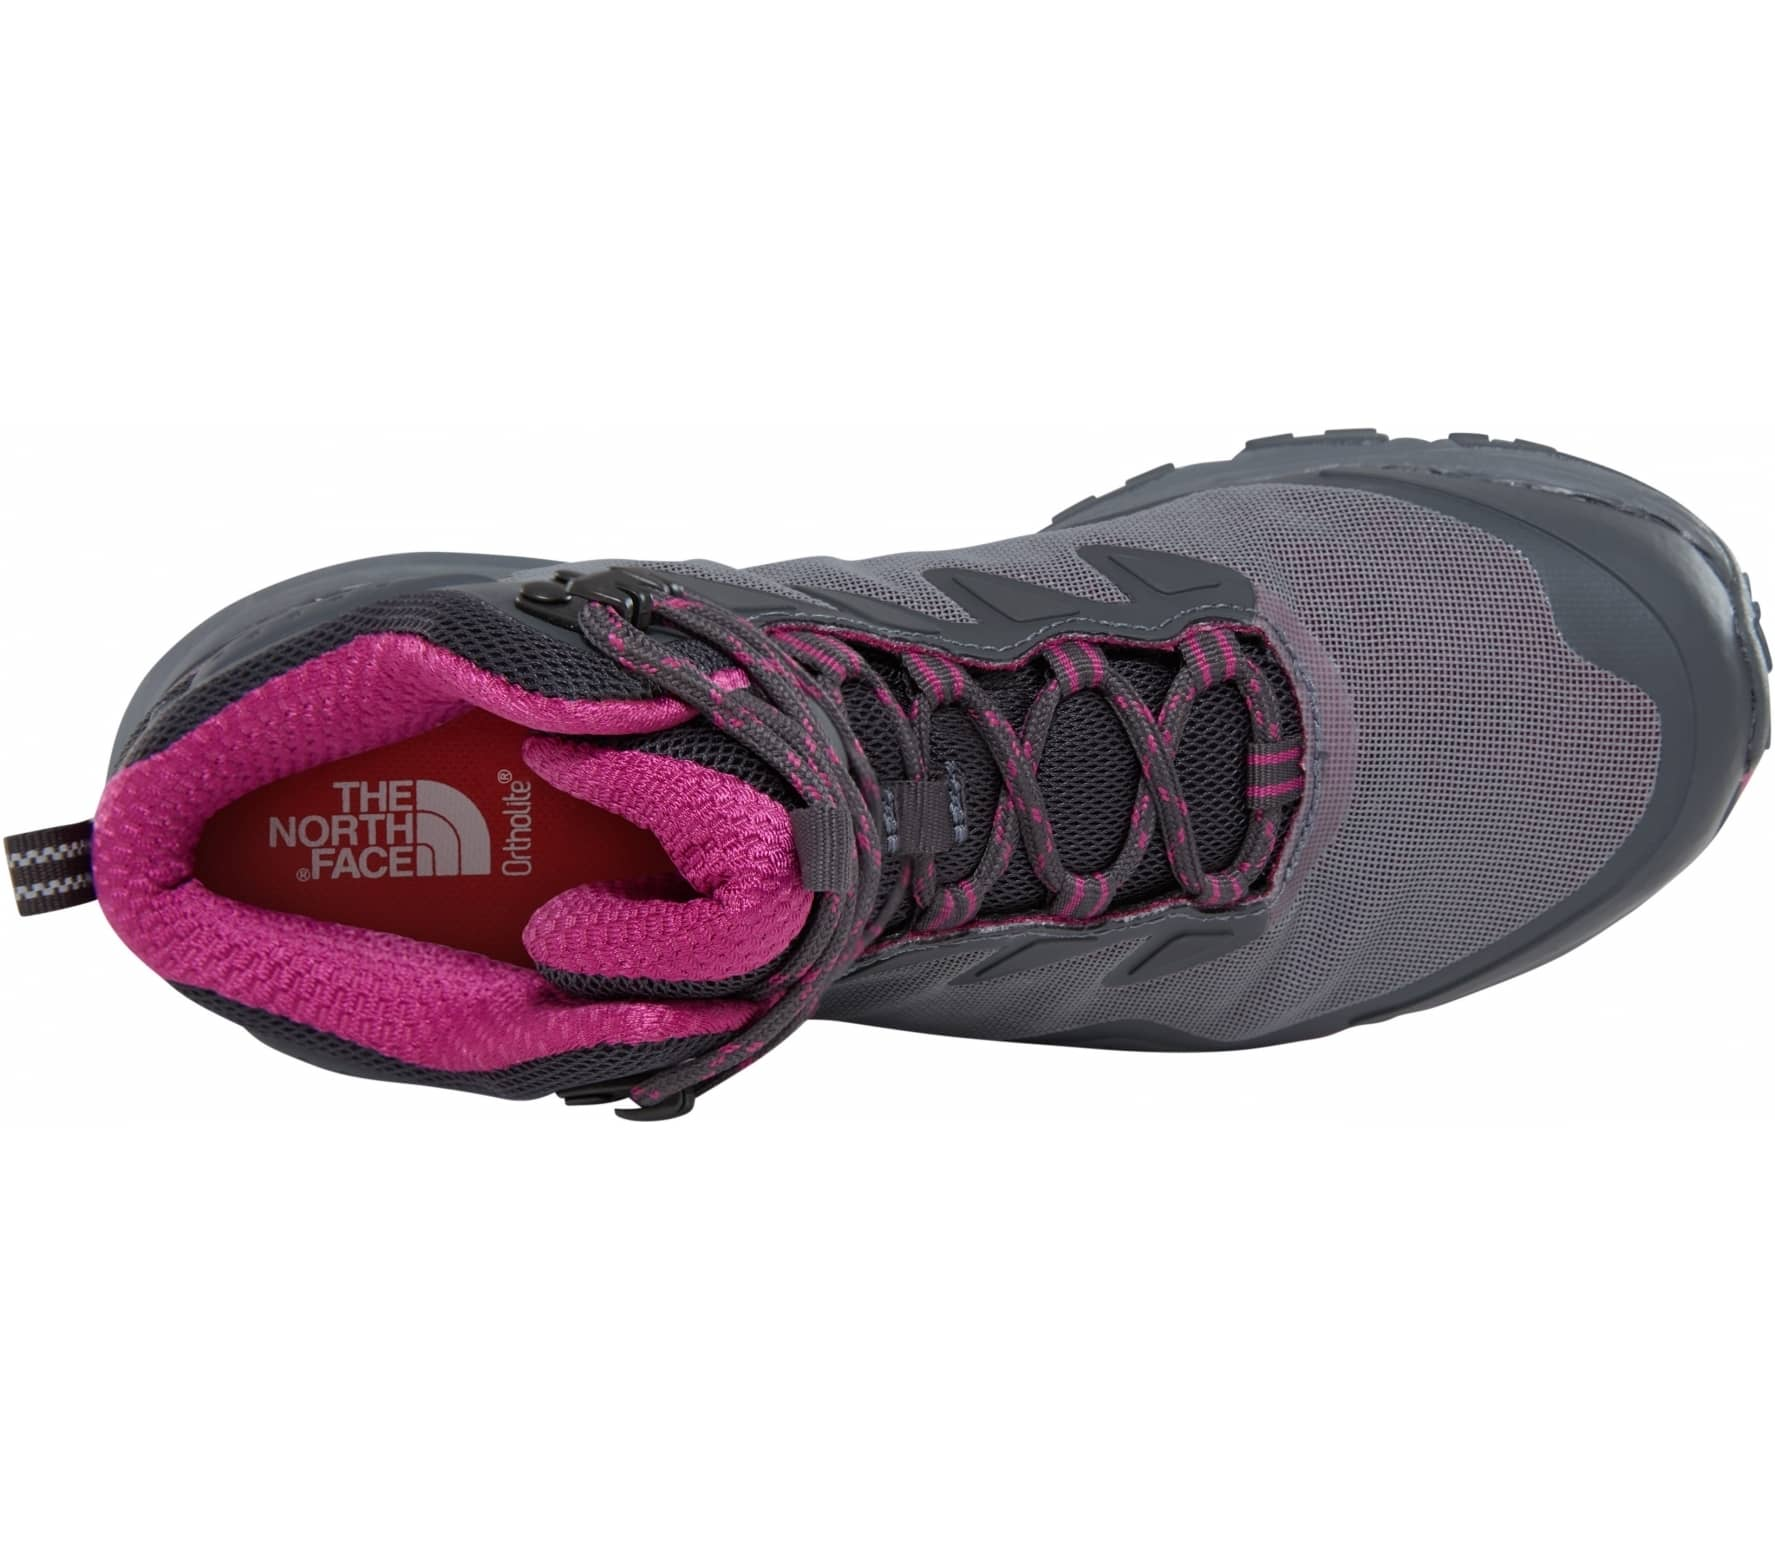 a083541dcf The North Face Ultra Fastpack III Mid GTX Donna argento